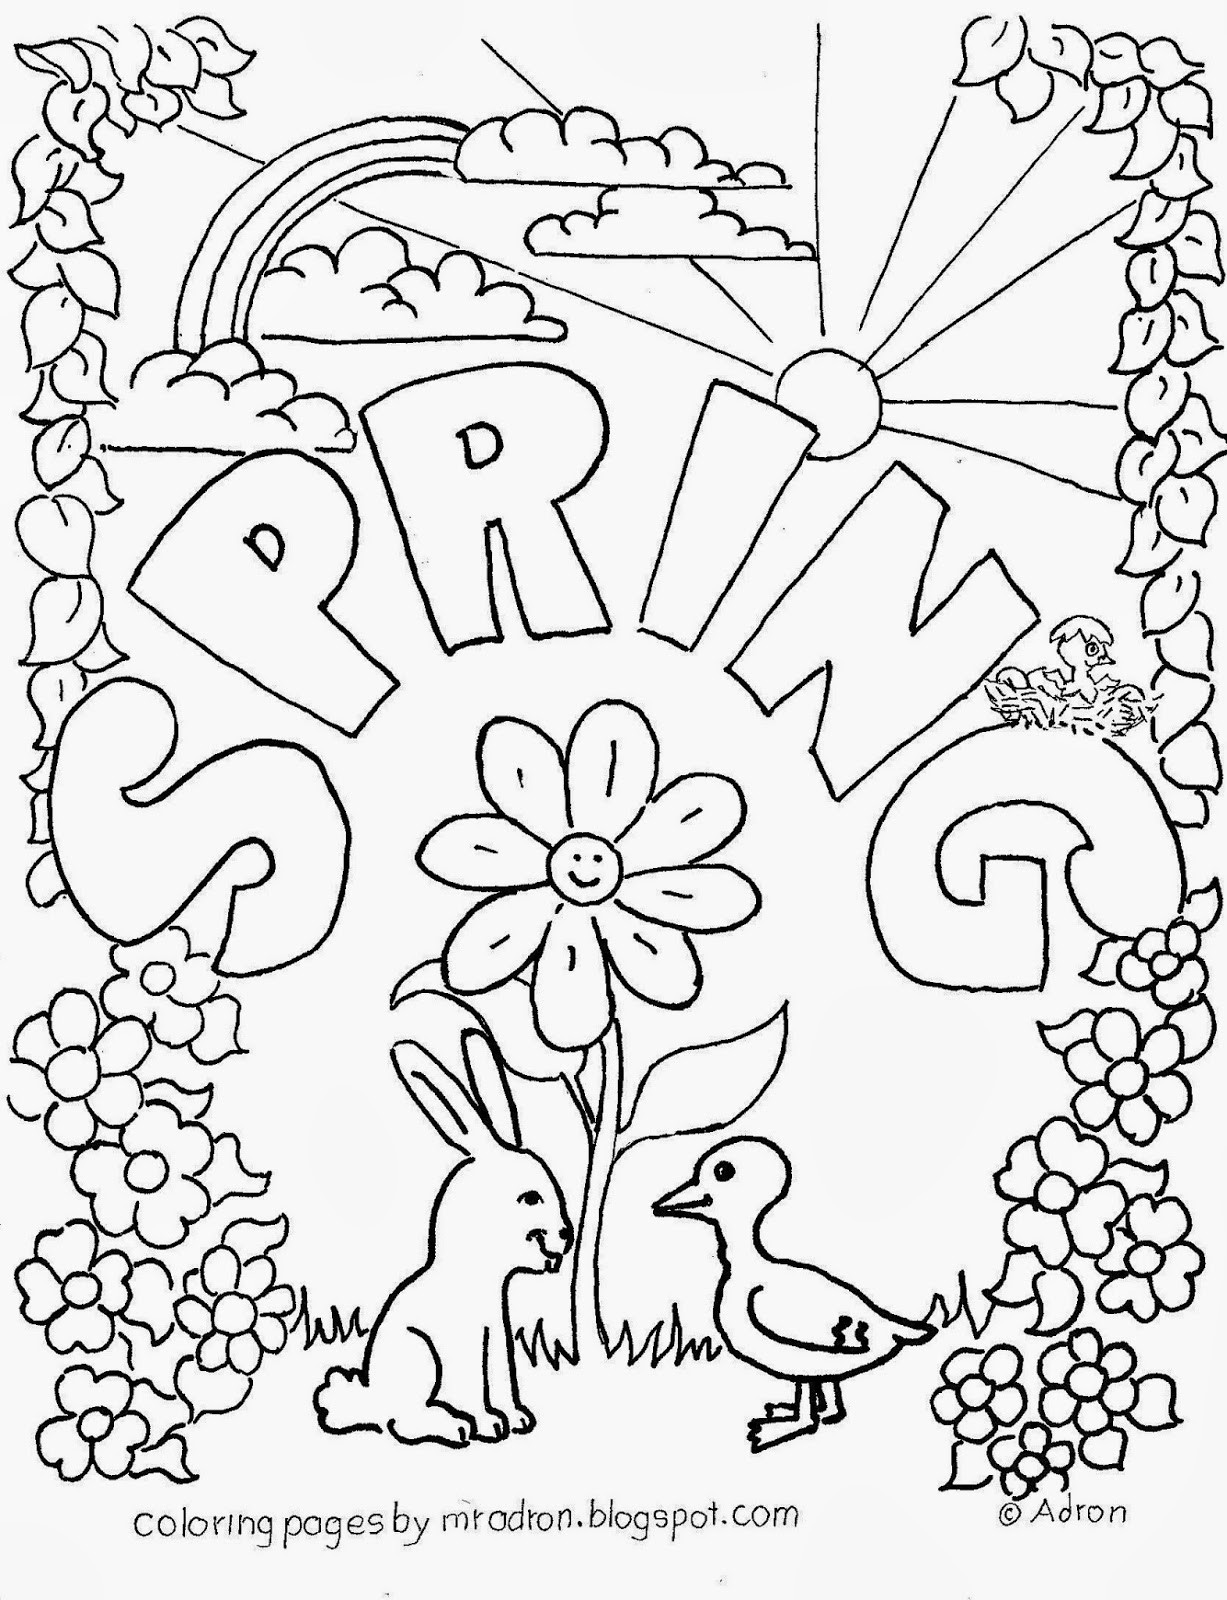 Spring Coloring Pages Free Printable  Cool Eabdcffeccd From Spring Coloring Pages on with HD